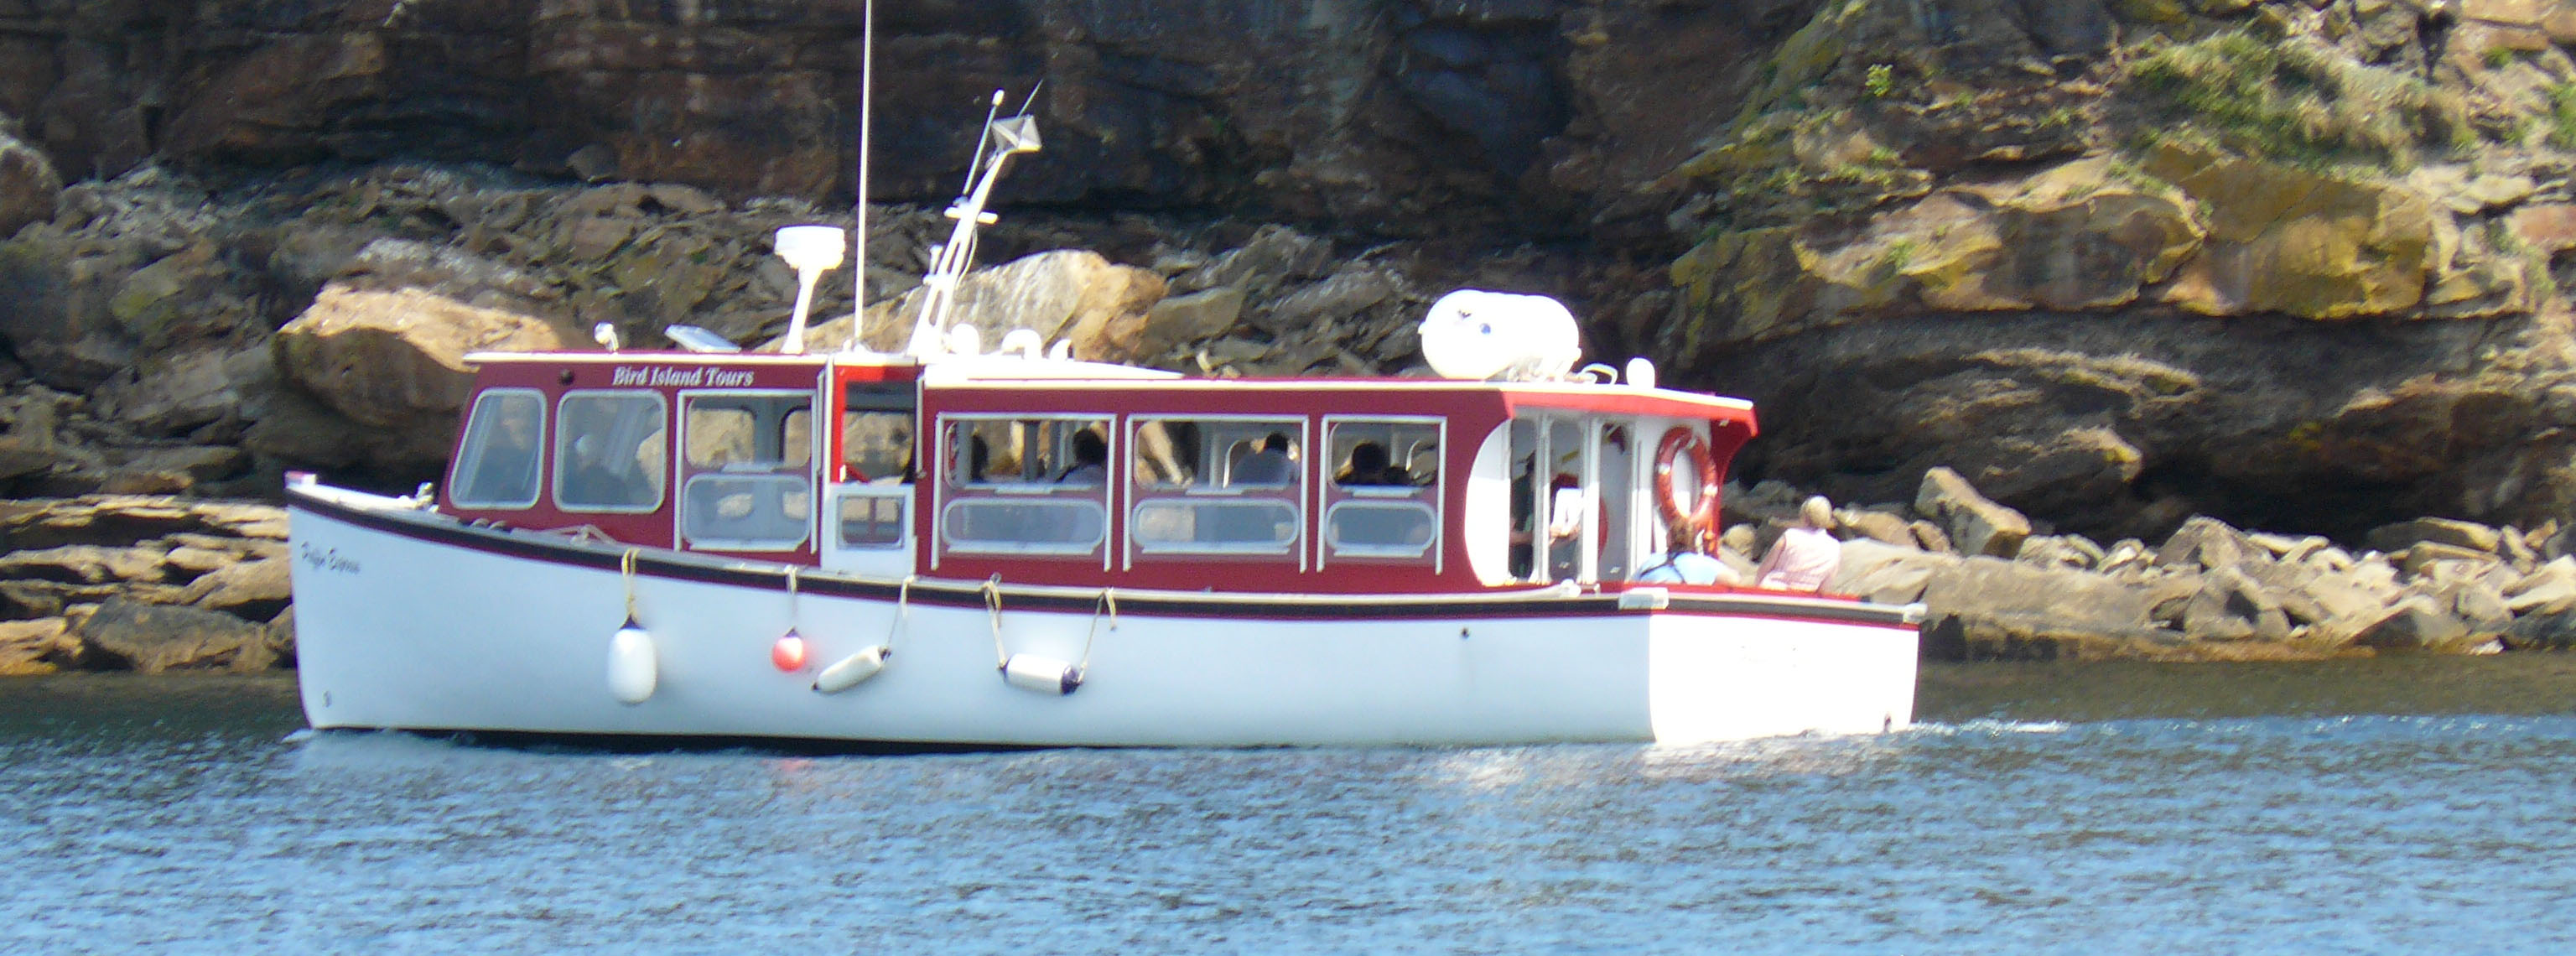 Our boat, the Puffin Express at the islands